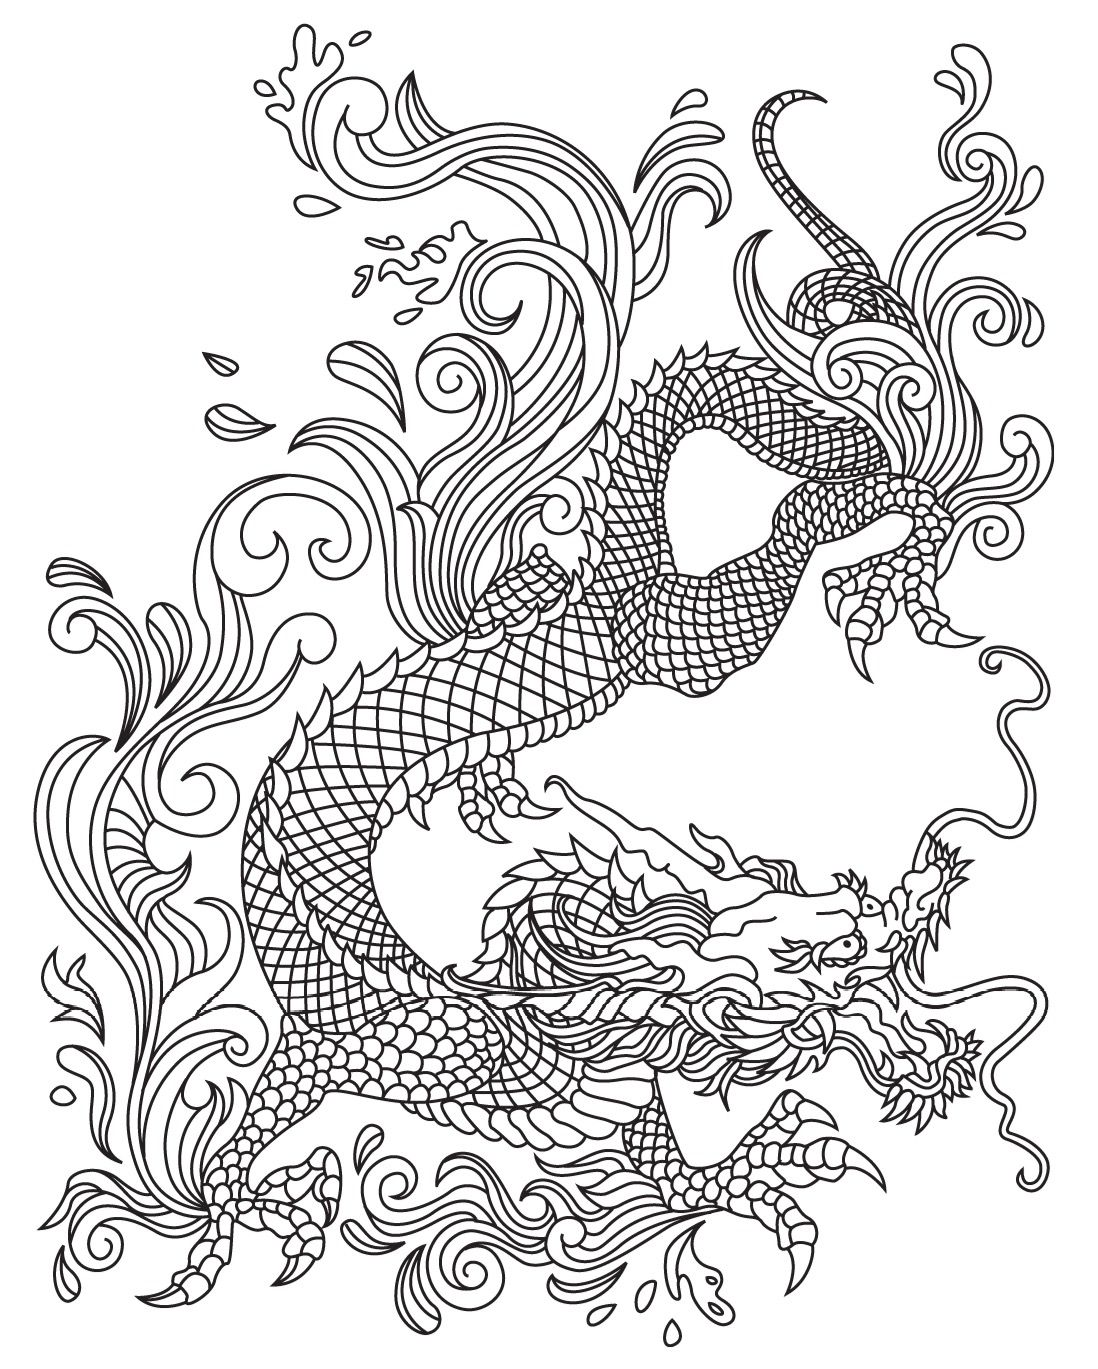 Japanese Dragon Colorish Coloring Book For Adults Mandala Relax